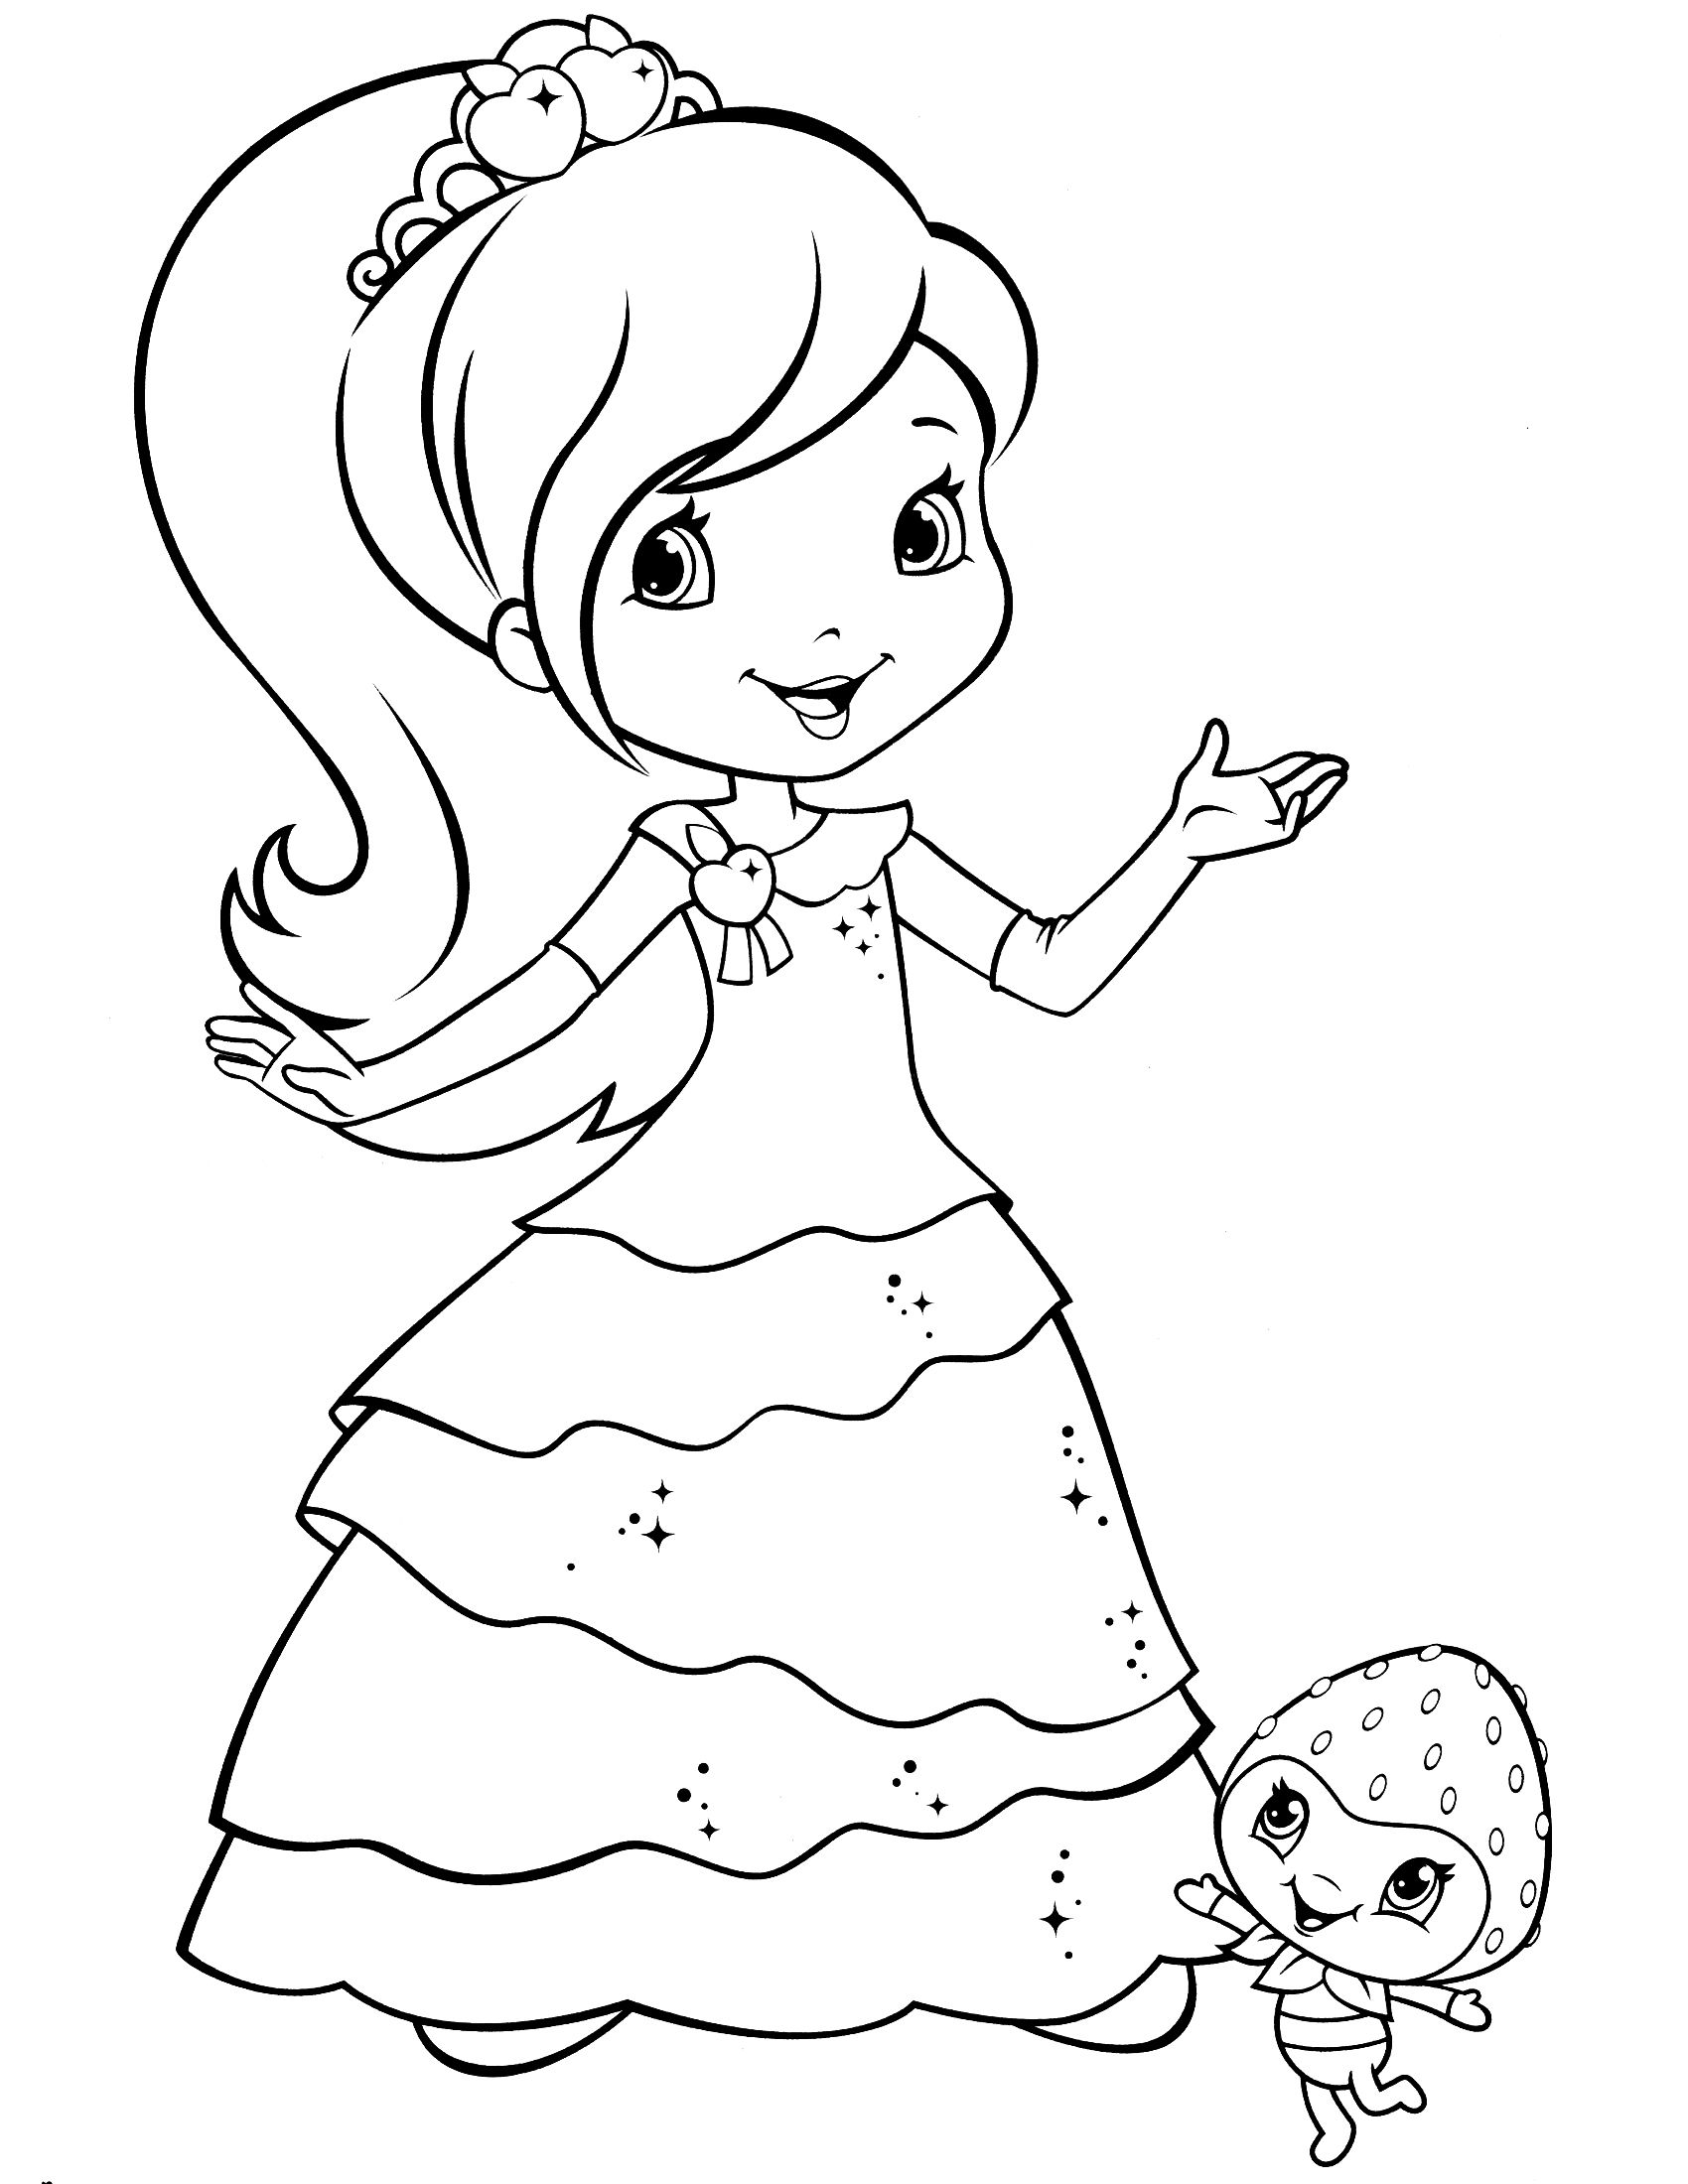 strawberry shortcake coloring page | Coloriage pour filles ...